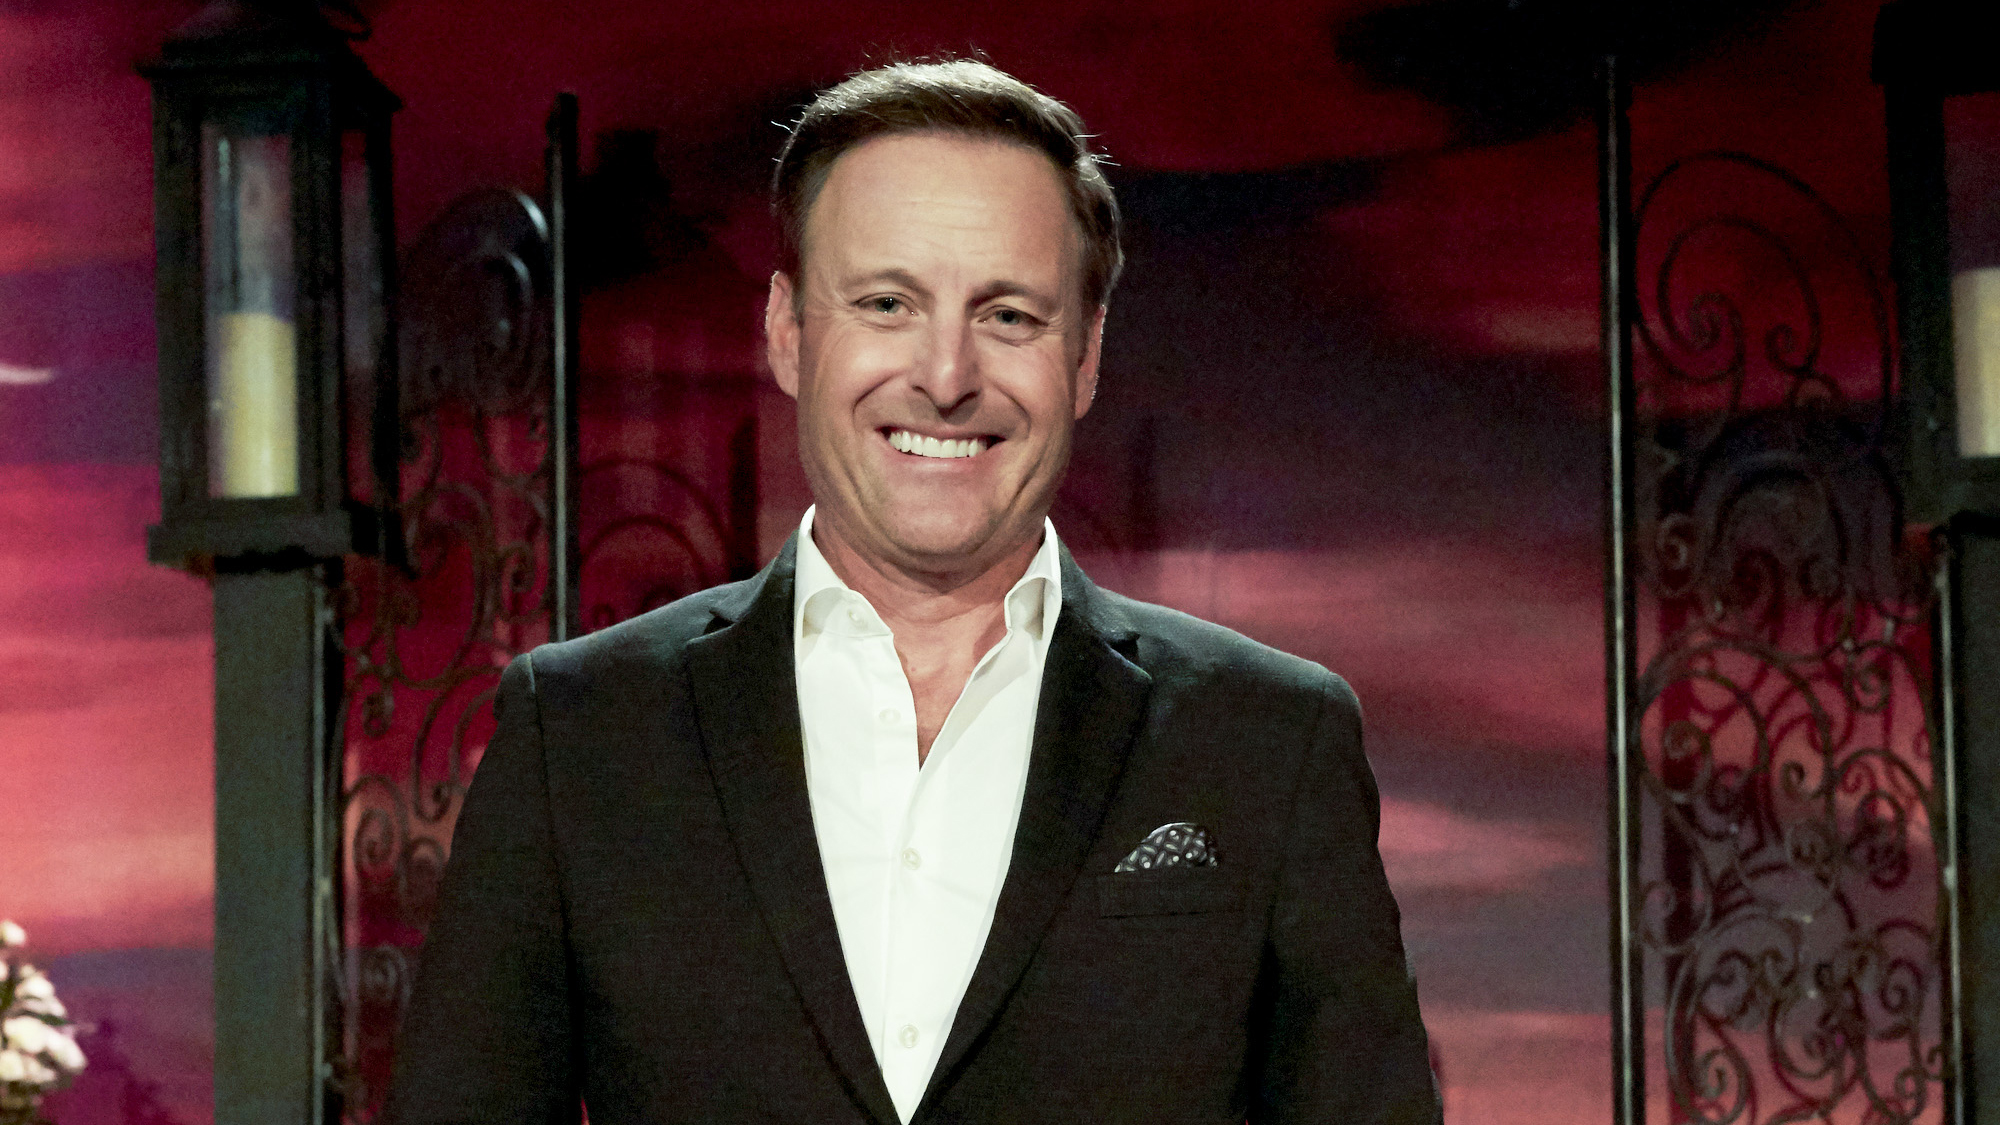 'Bachelor': Who could be up for the hosting gig now that Chris Harrison is out?